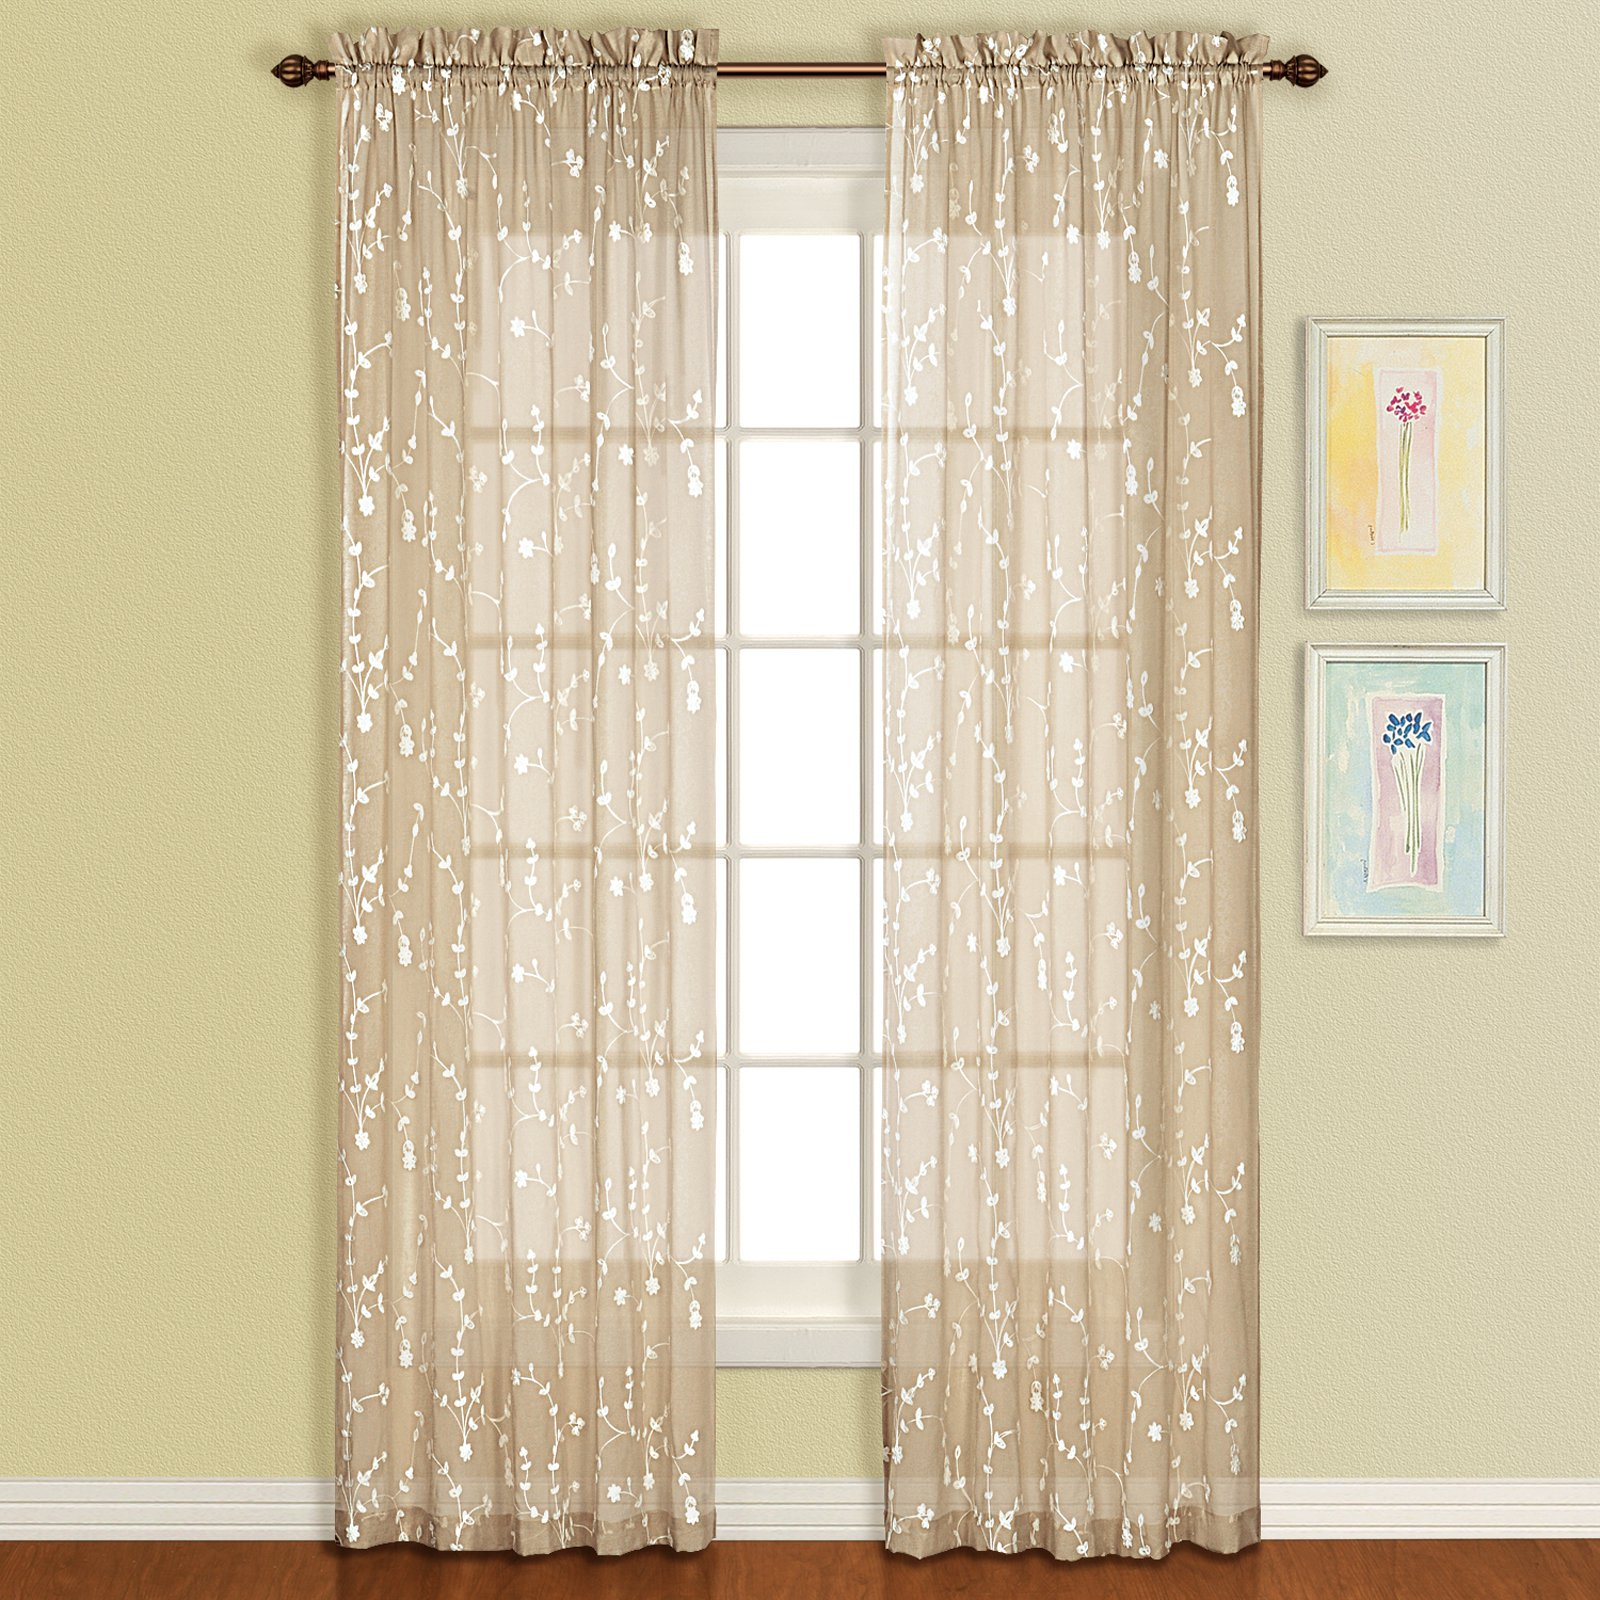 United Curtain Savannah Curtain Panel In 2019 | Products pertaining to Luxury Collection Venetian Sheer Curtain Panel Pairs (Image 19 of 20)